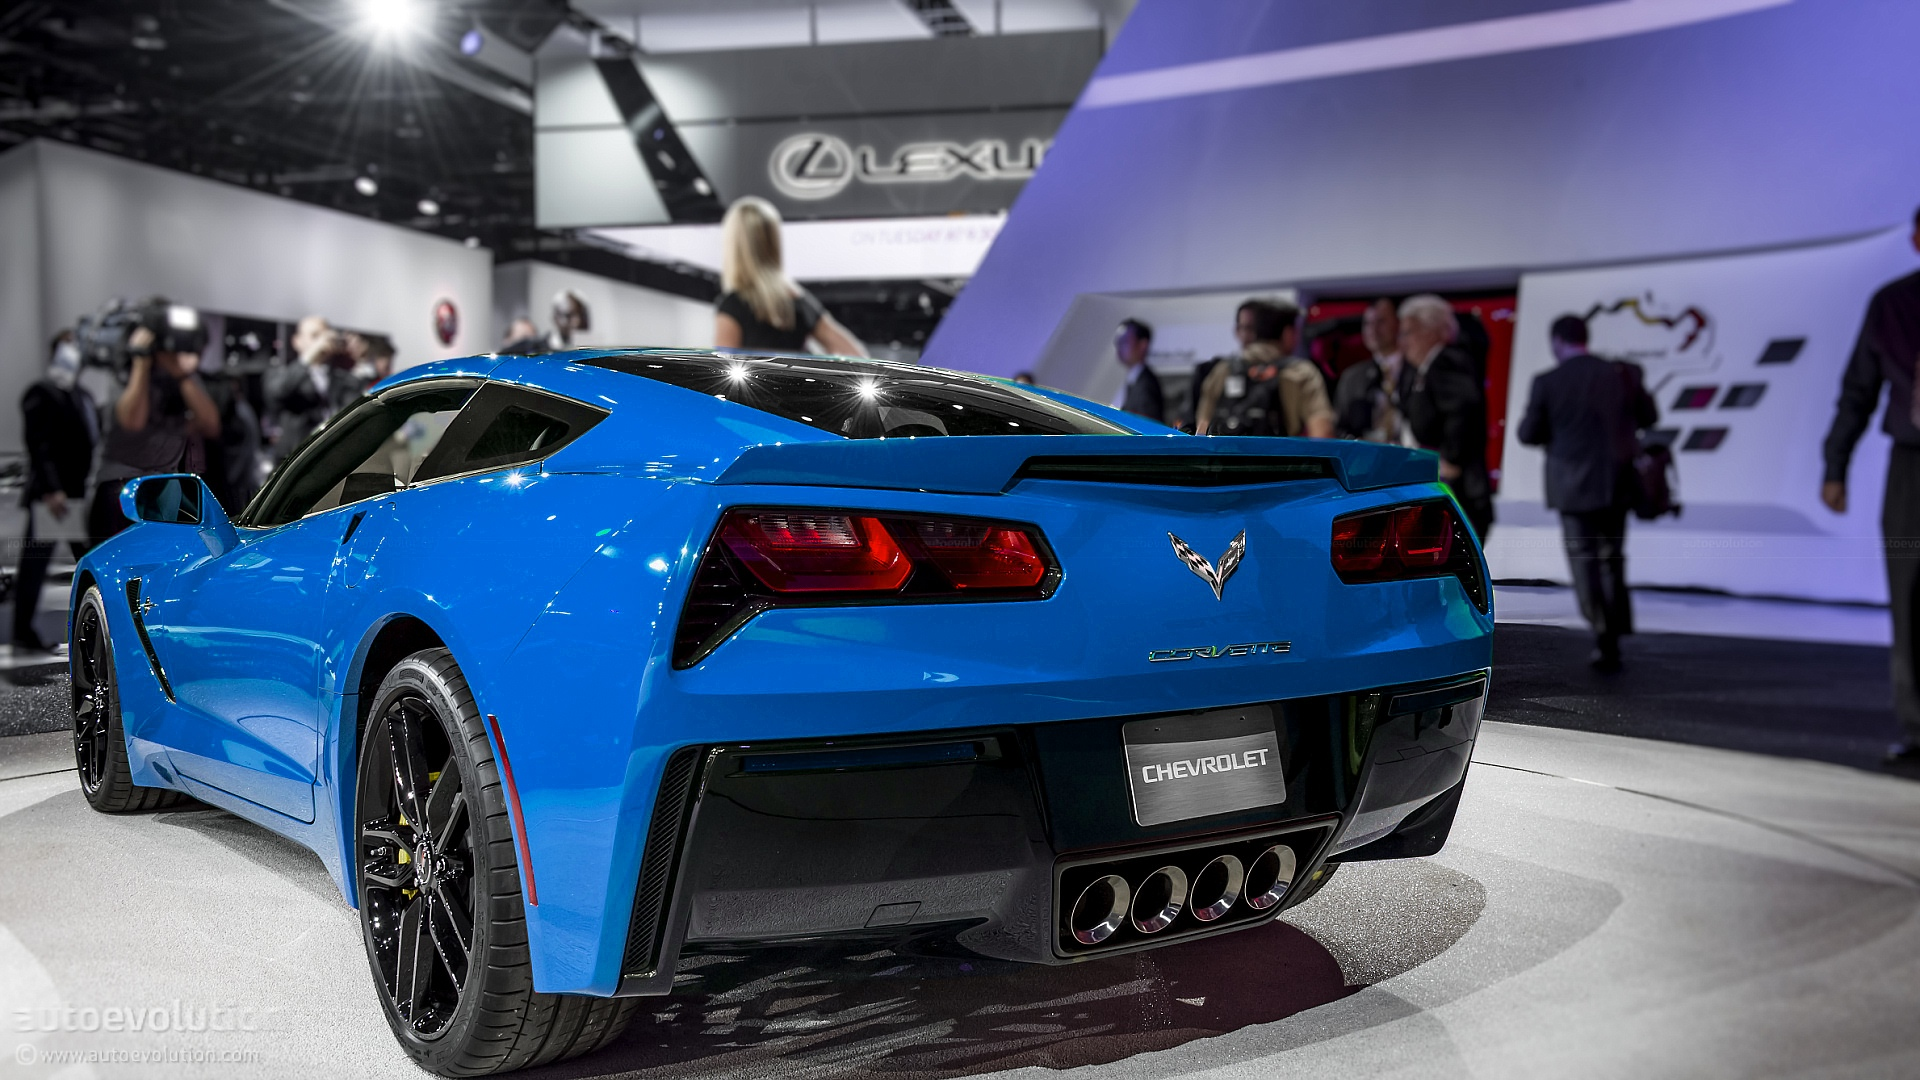 2014 corvette stingray blue Blue 2014 Corvette Stingray # 1632 # AutoWallpaper77